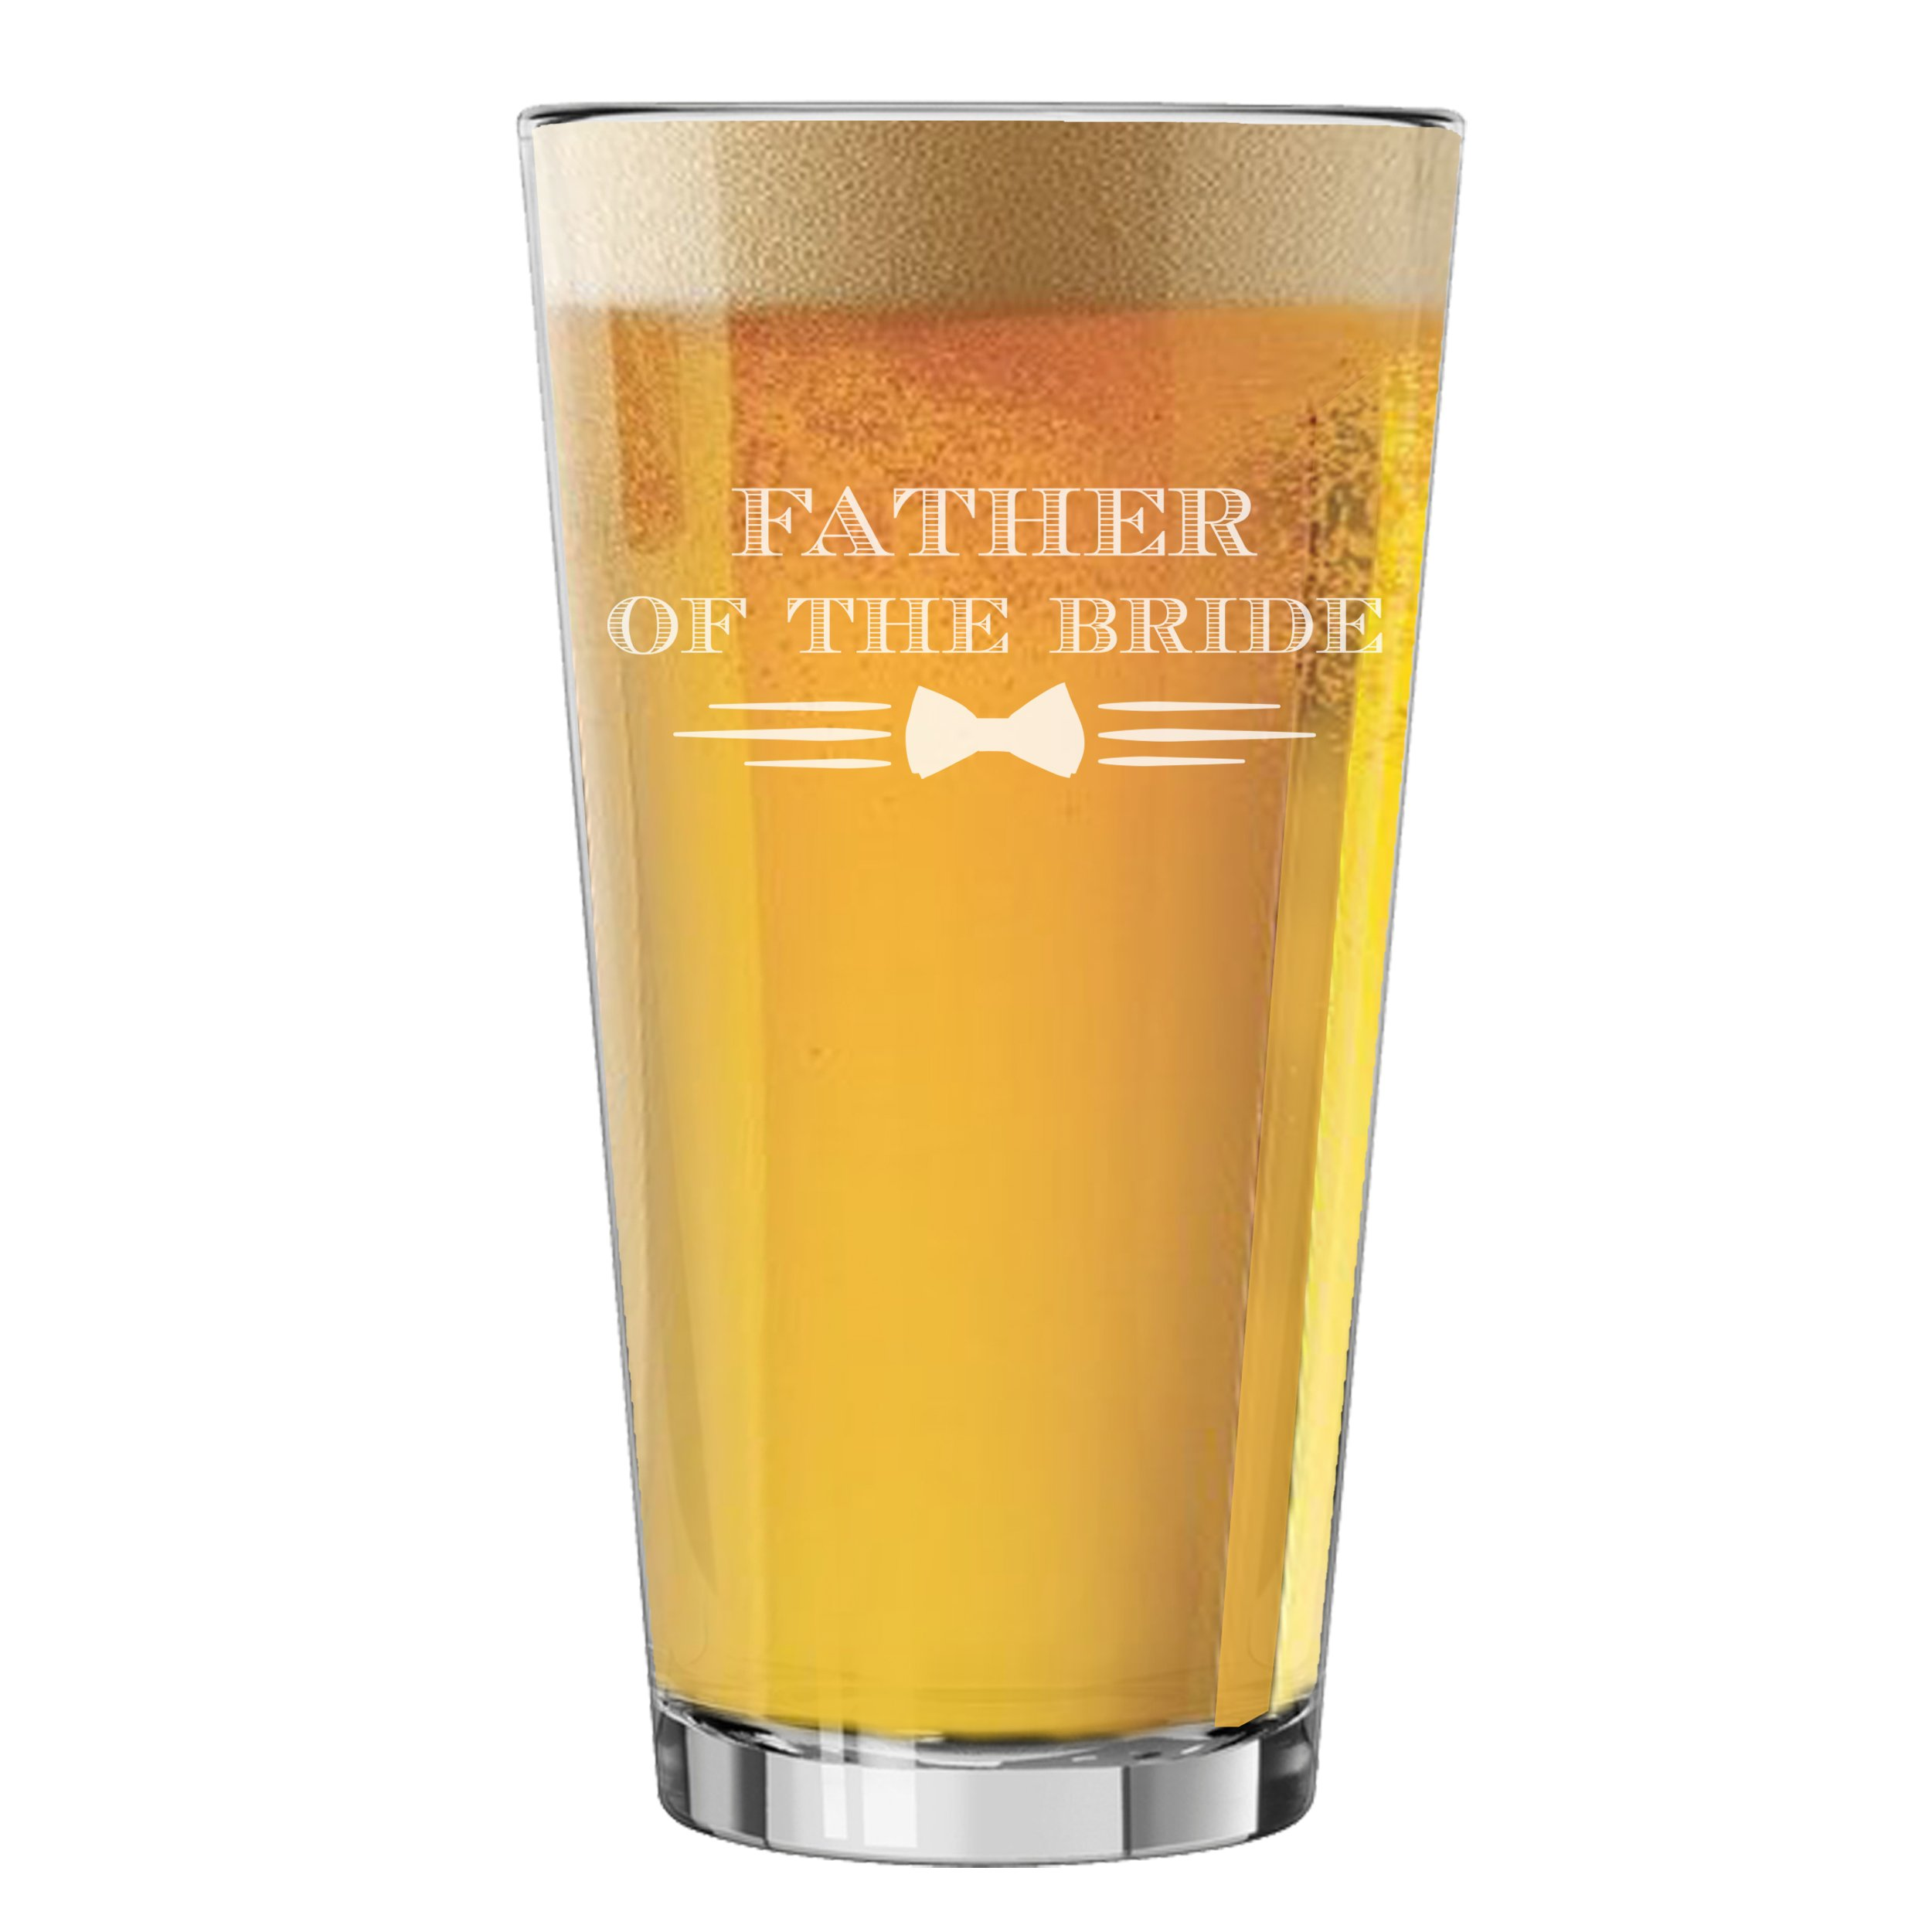 Pint Glasses for Bachelor Party, Weddings, Wedding Favors, Beer Gifts (Bow Tie Style 16oz, Father of the Bride Glass)